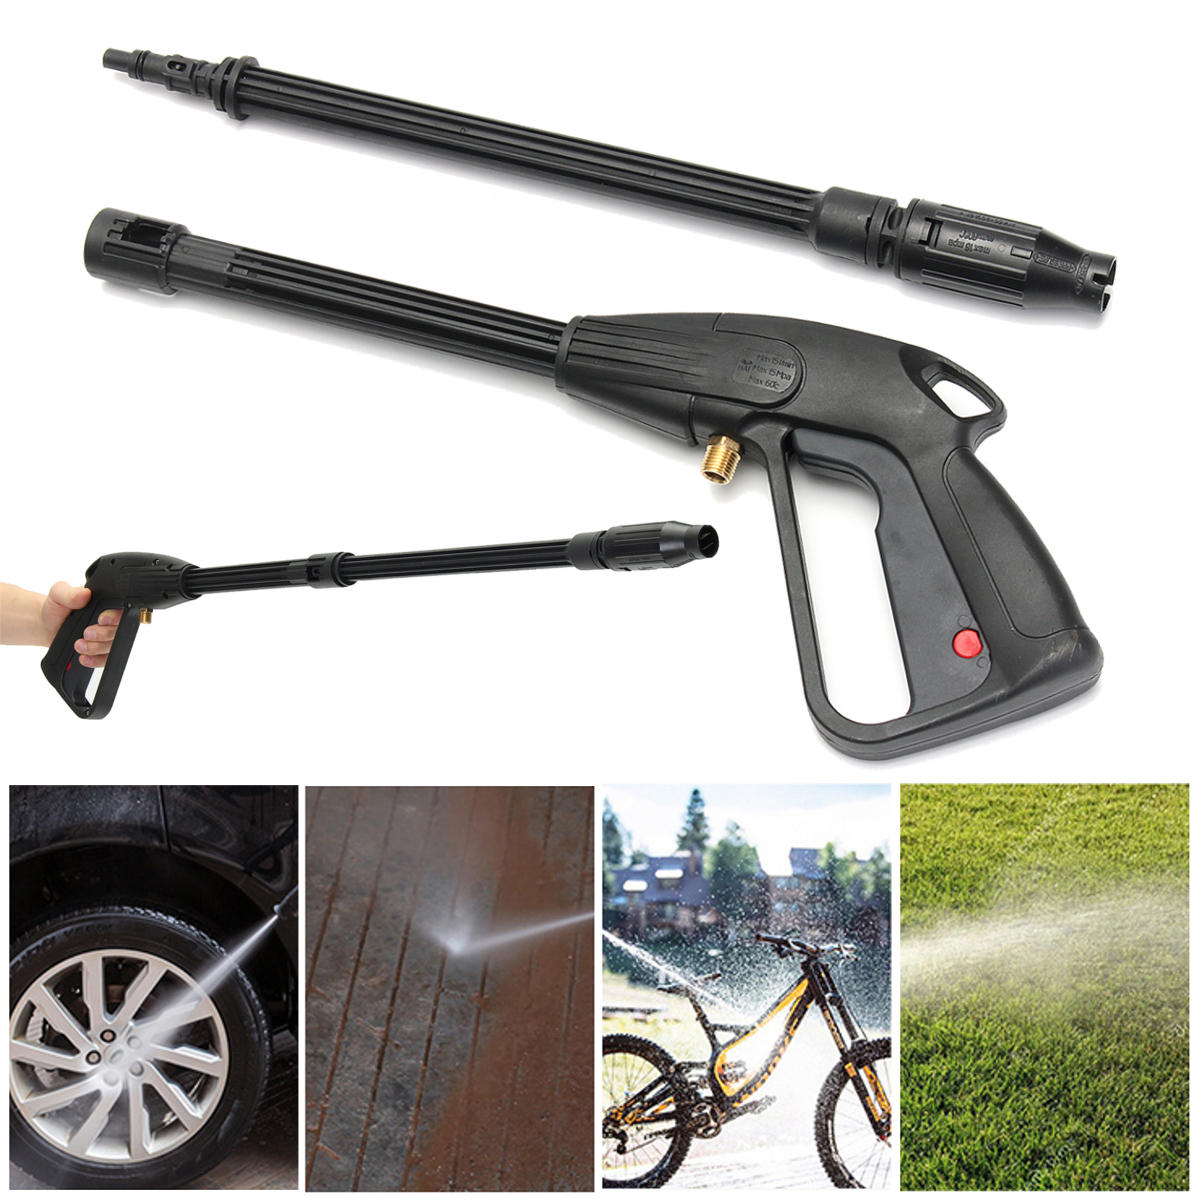 High Pressure Power Washer Gun Copper With Super Long Nozzle For Washing Car Vehicle Wall Floor Car Washing Tool Car Styling Durable In Use Automobiles & Motorcycles